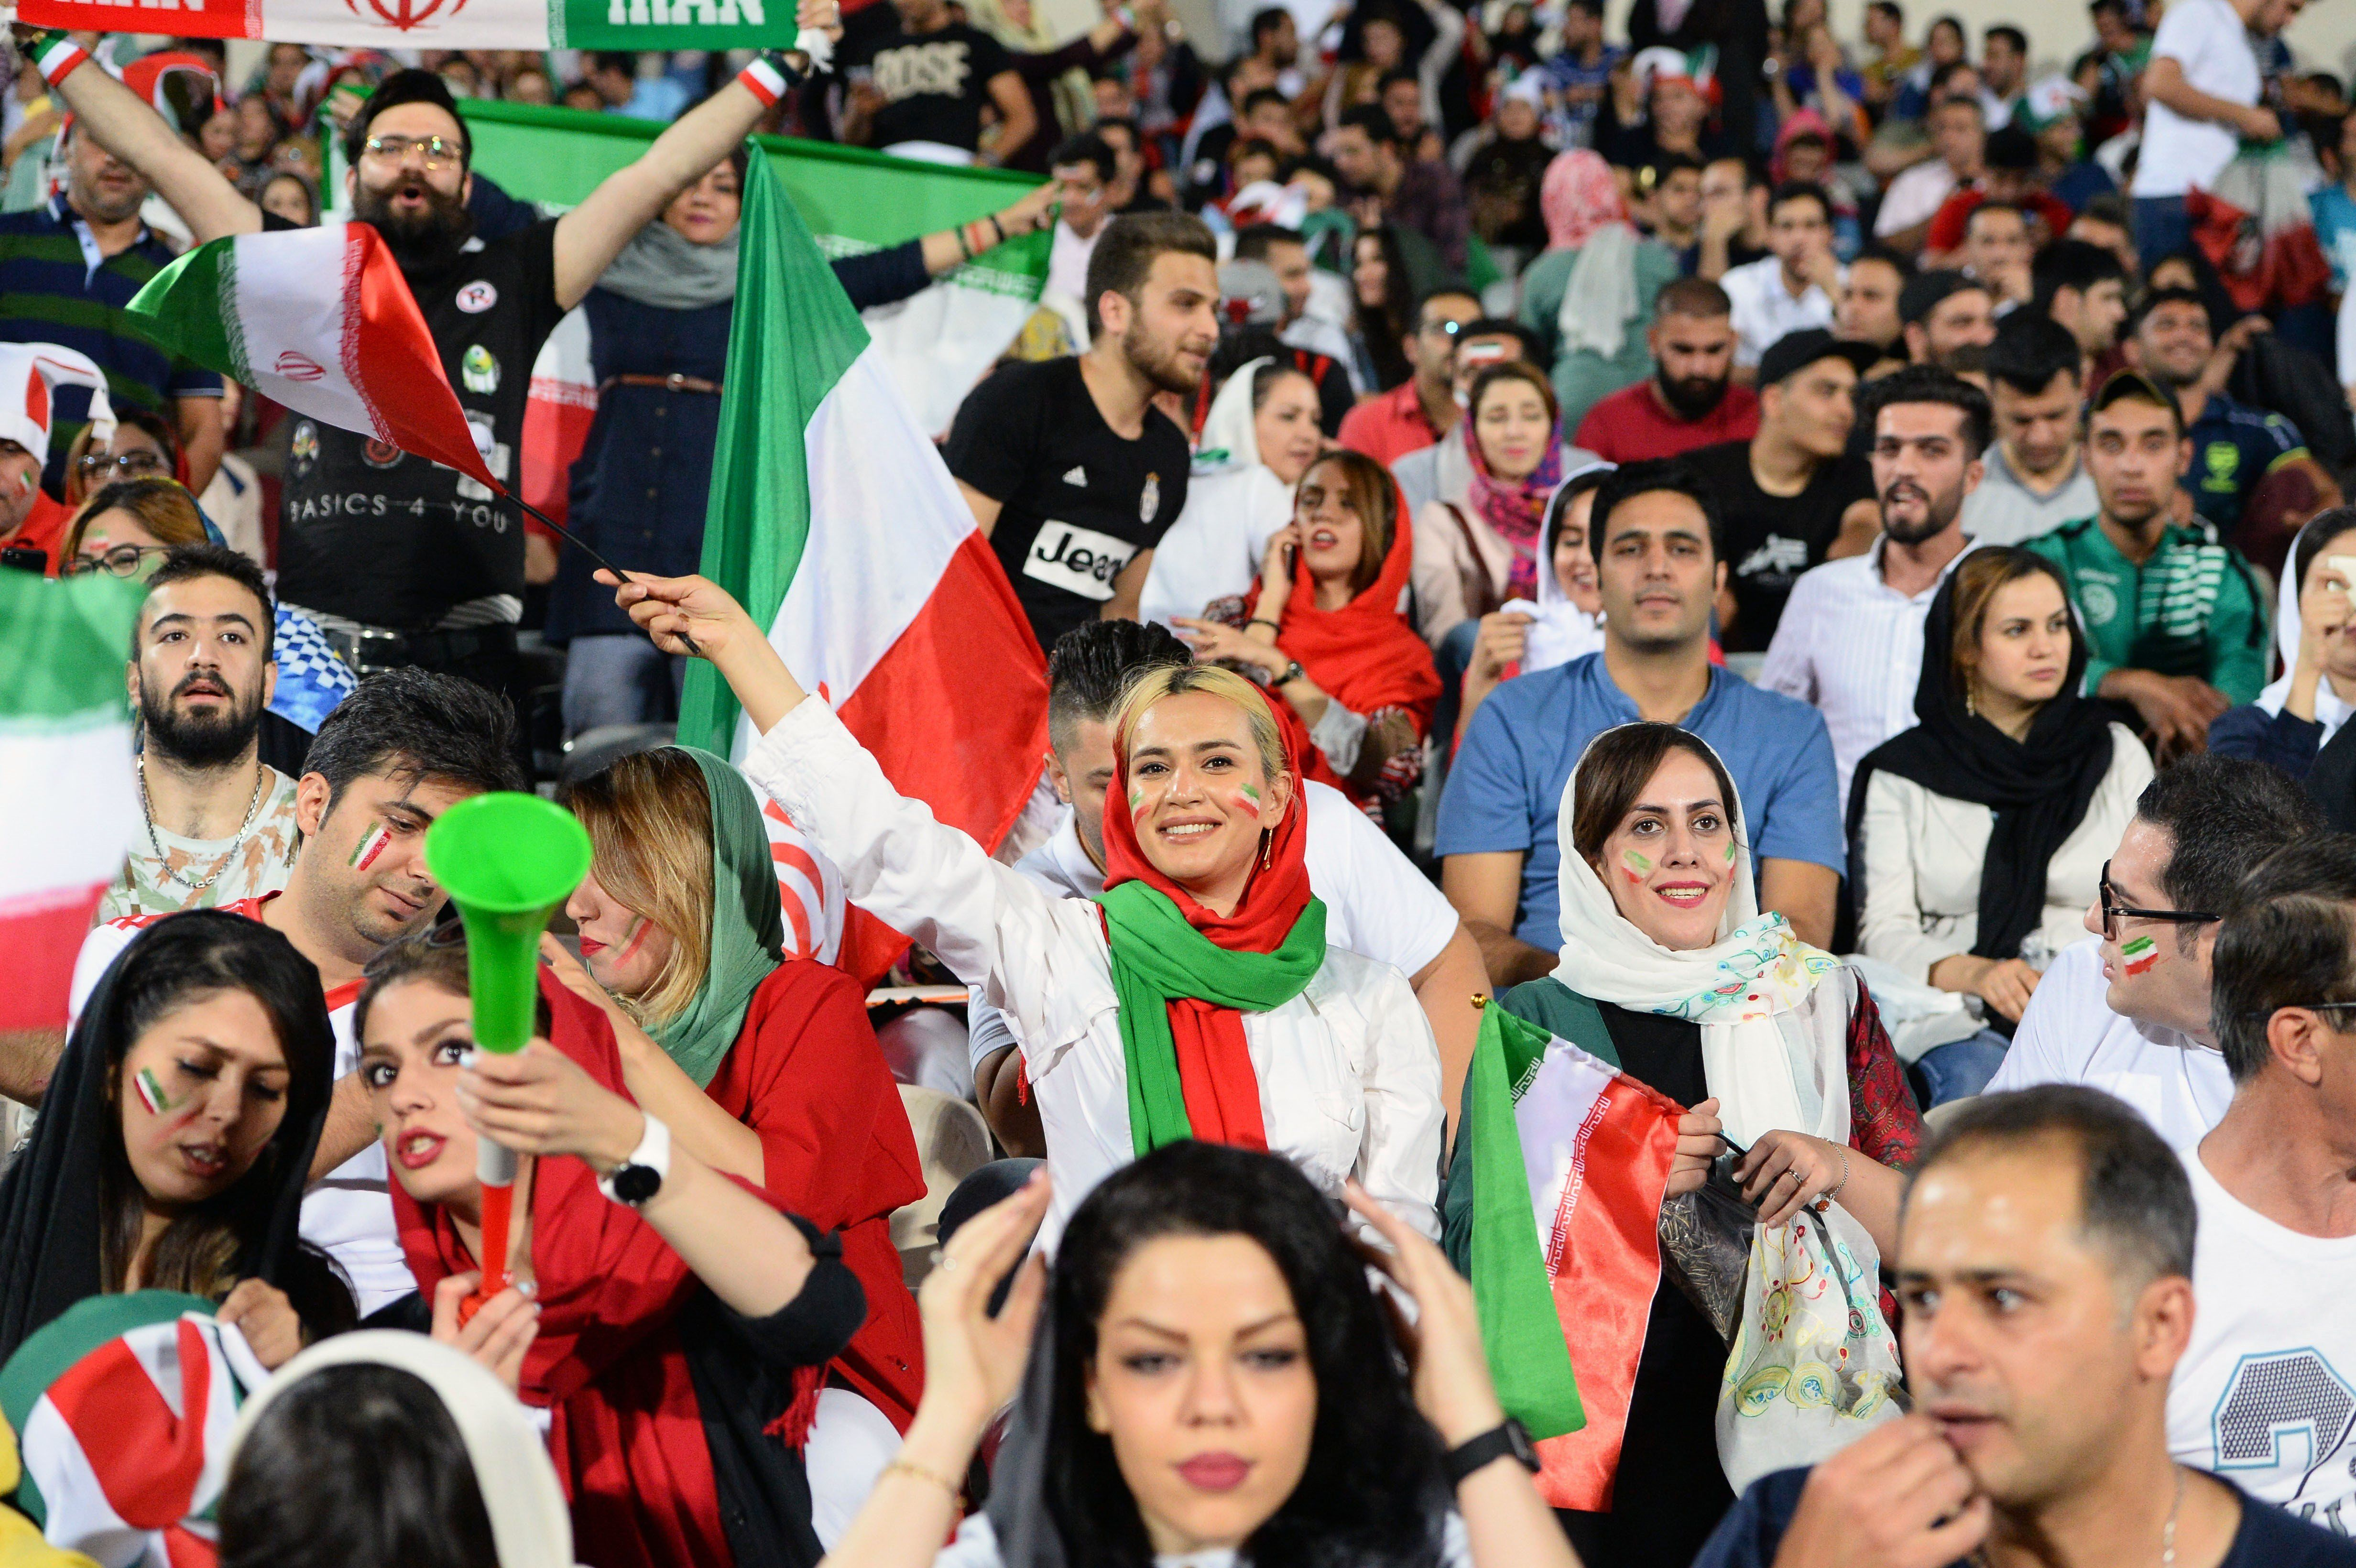 TEHRAN, IRAN - JUNE 20: Fans gather for a public viewing event at Azadi Stadium in Tehran, Iran on June 20, 2018 to watch the 2018 FIFA World Cup Russia Group B match between Iran and Spain. (Photo by Fatemeh Bahrami/Anadolu Agency/Getty Images)